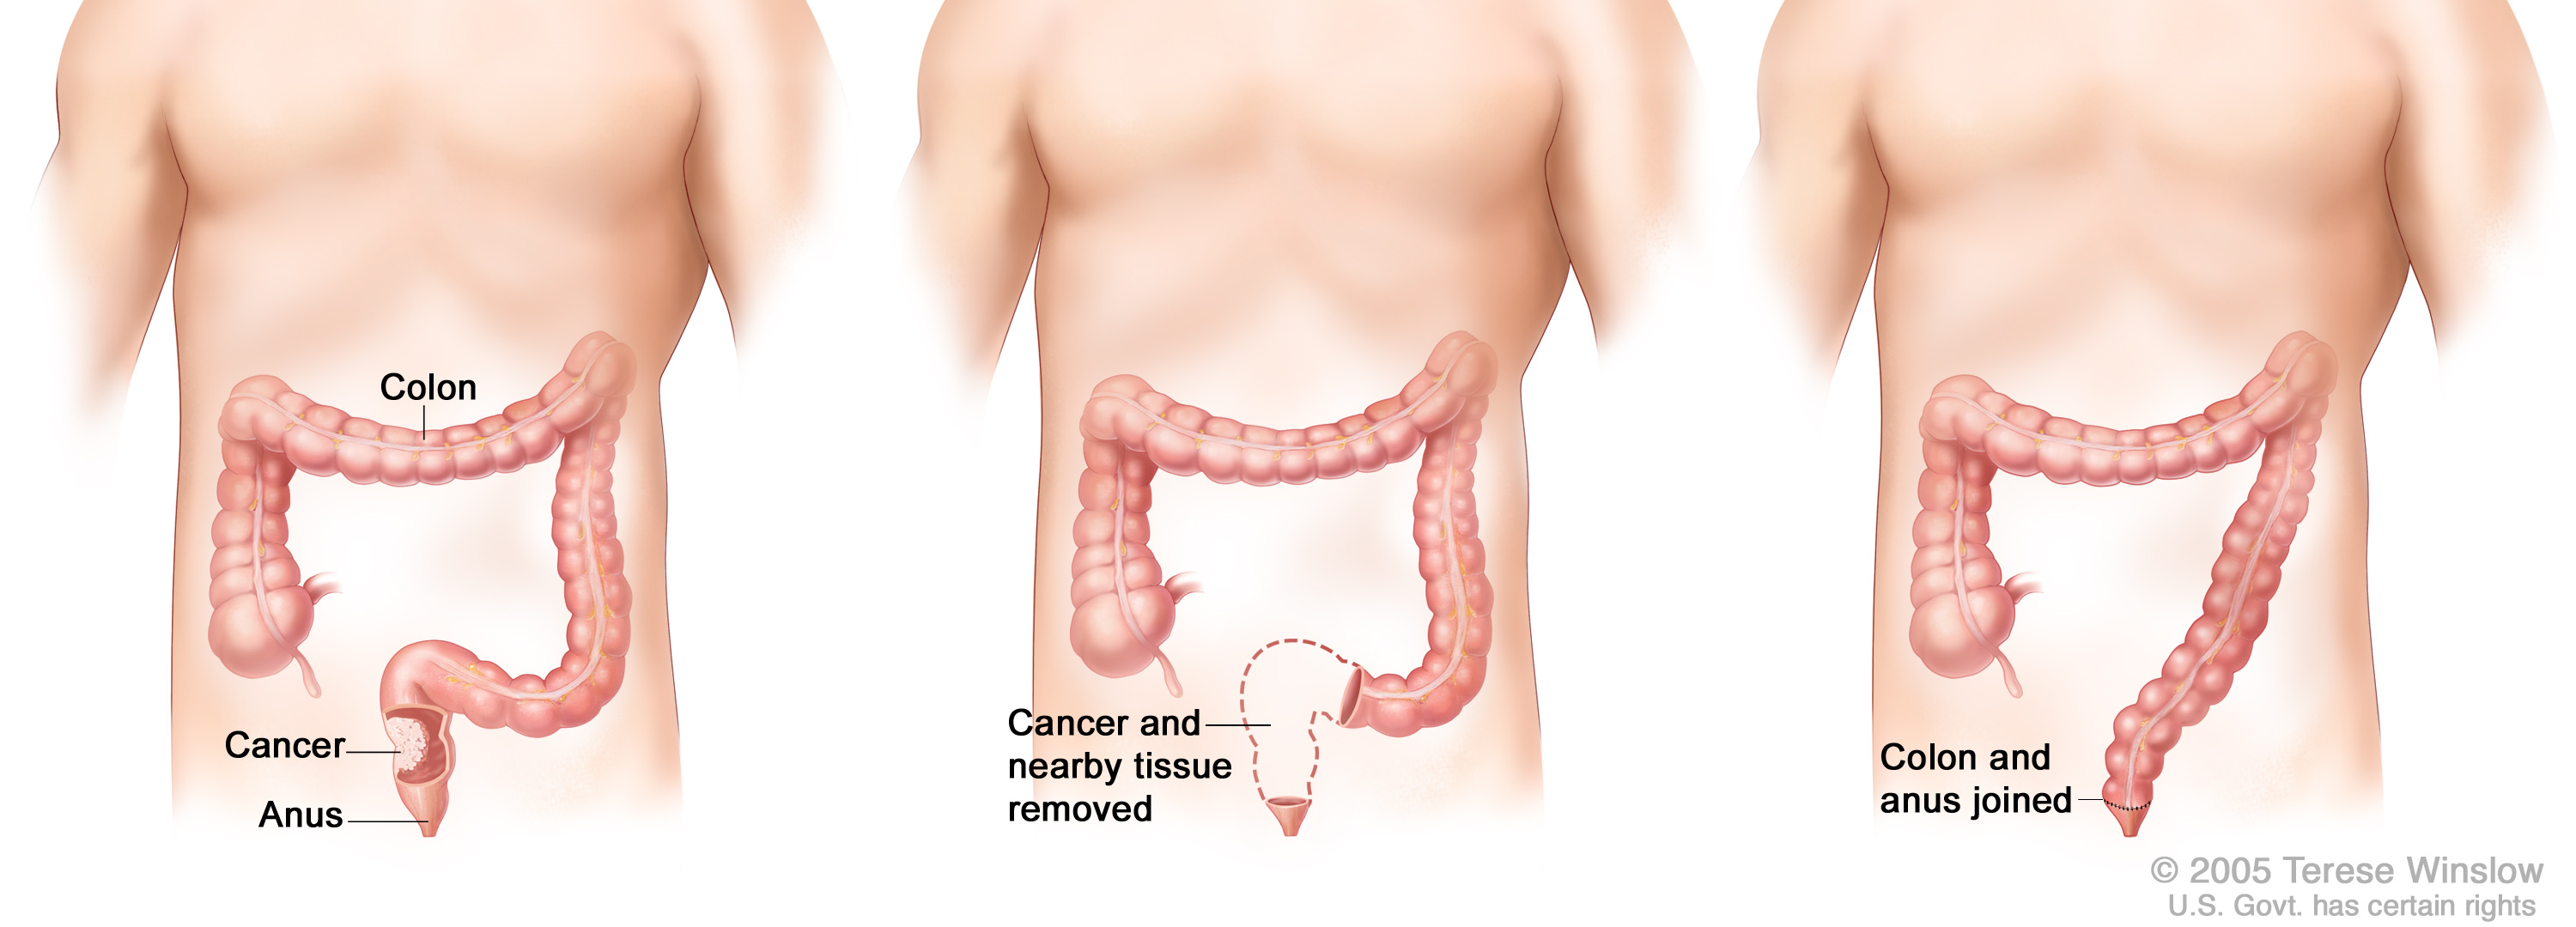 Colorectal Cancer Diagnosis And Treatment Knight Cancer Institute Ohsu